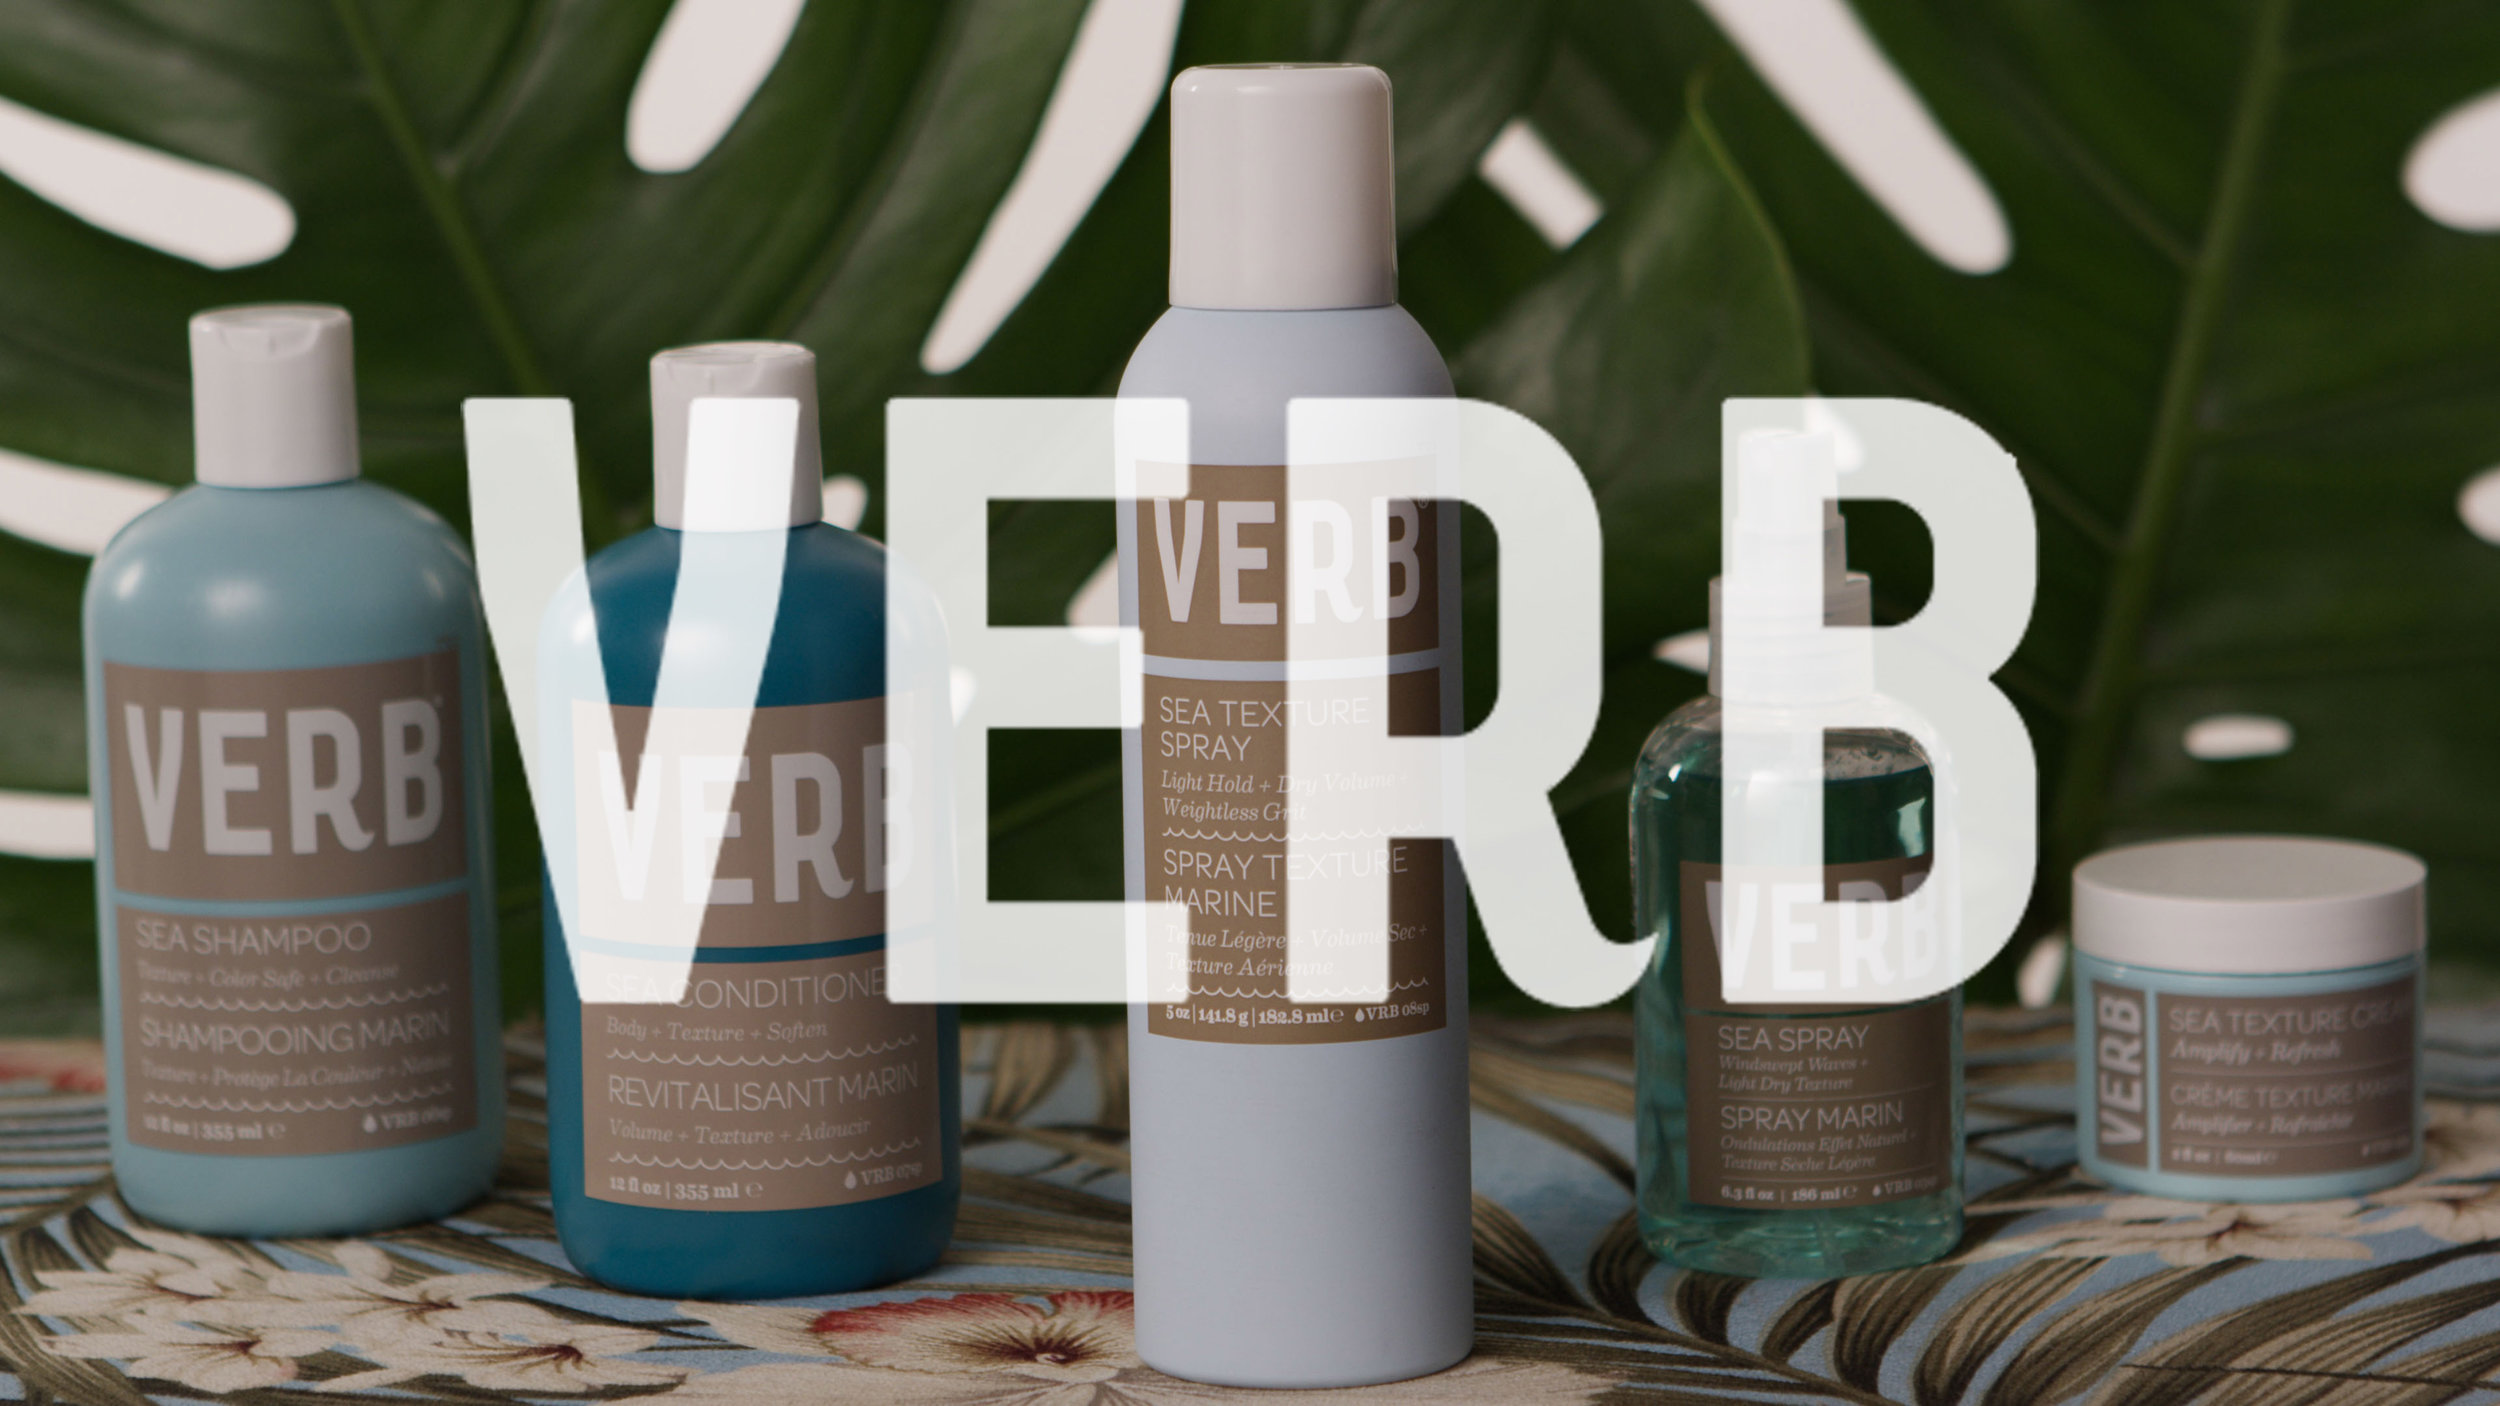 "Verb ""Sea Texture Spray"" - Social Campaign"